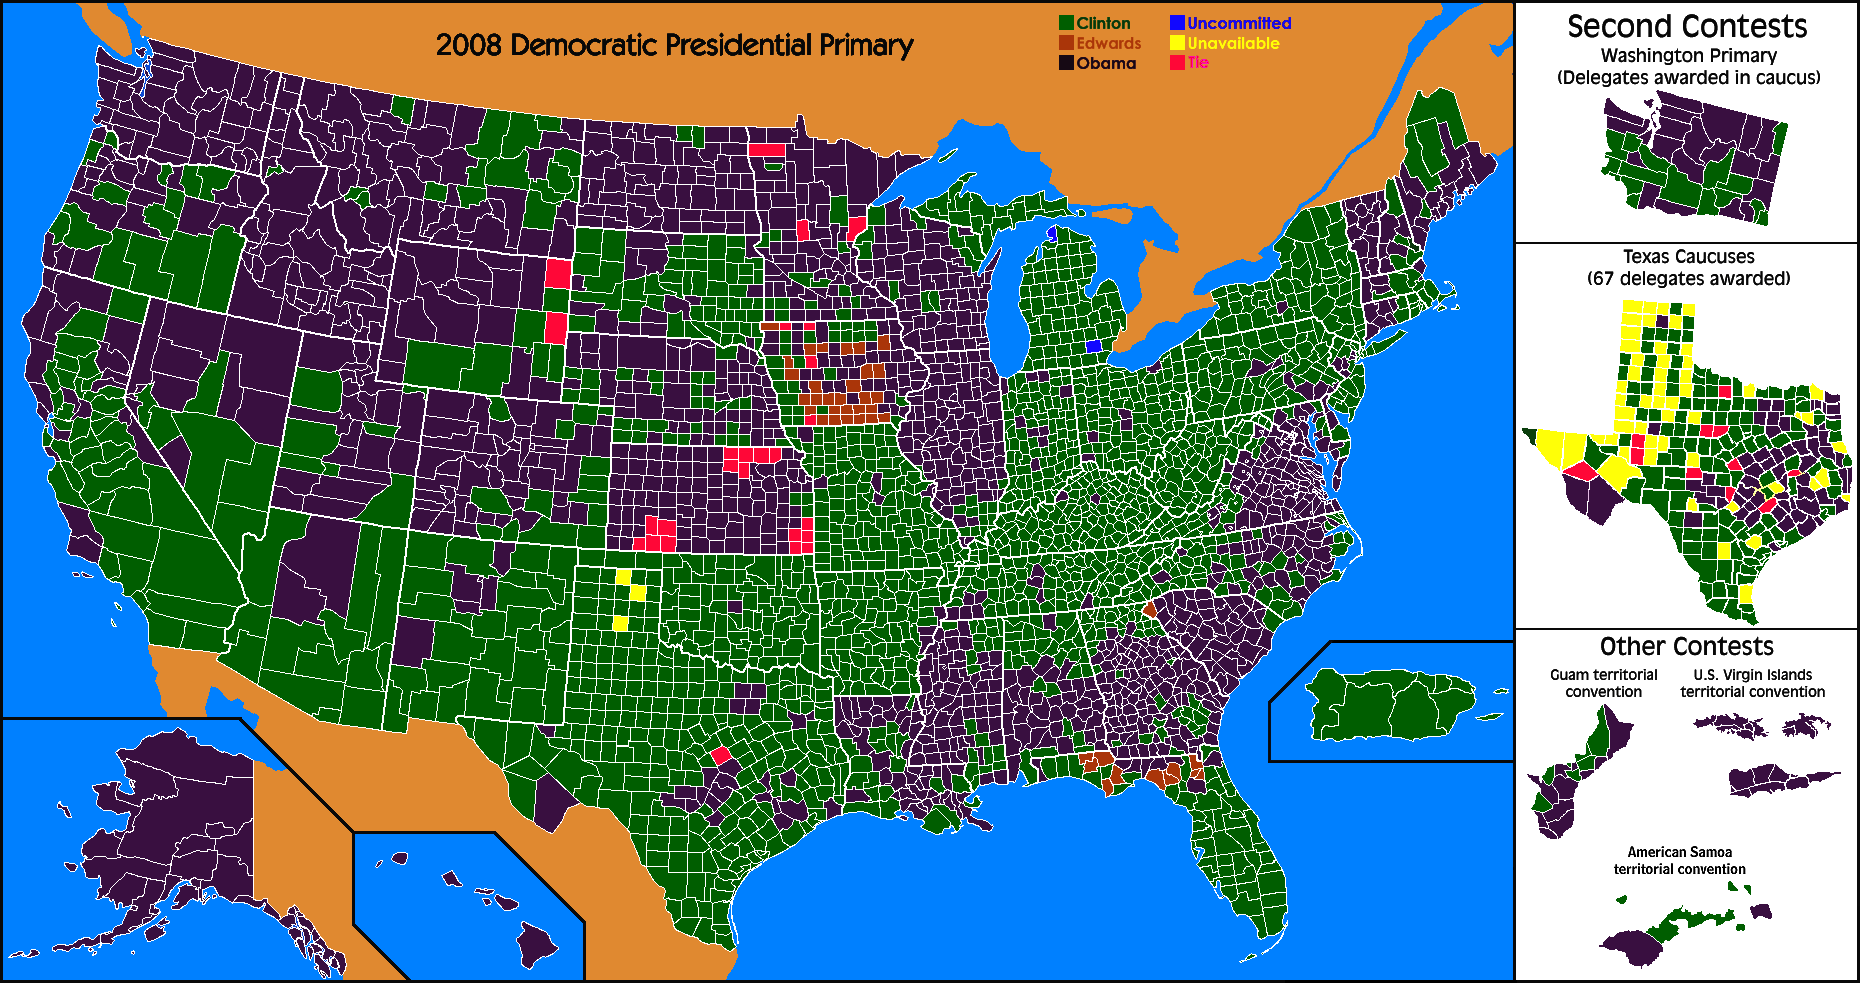 Jurisdynamics Obama Versus Clinton County By County